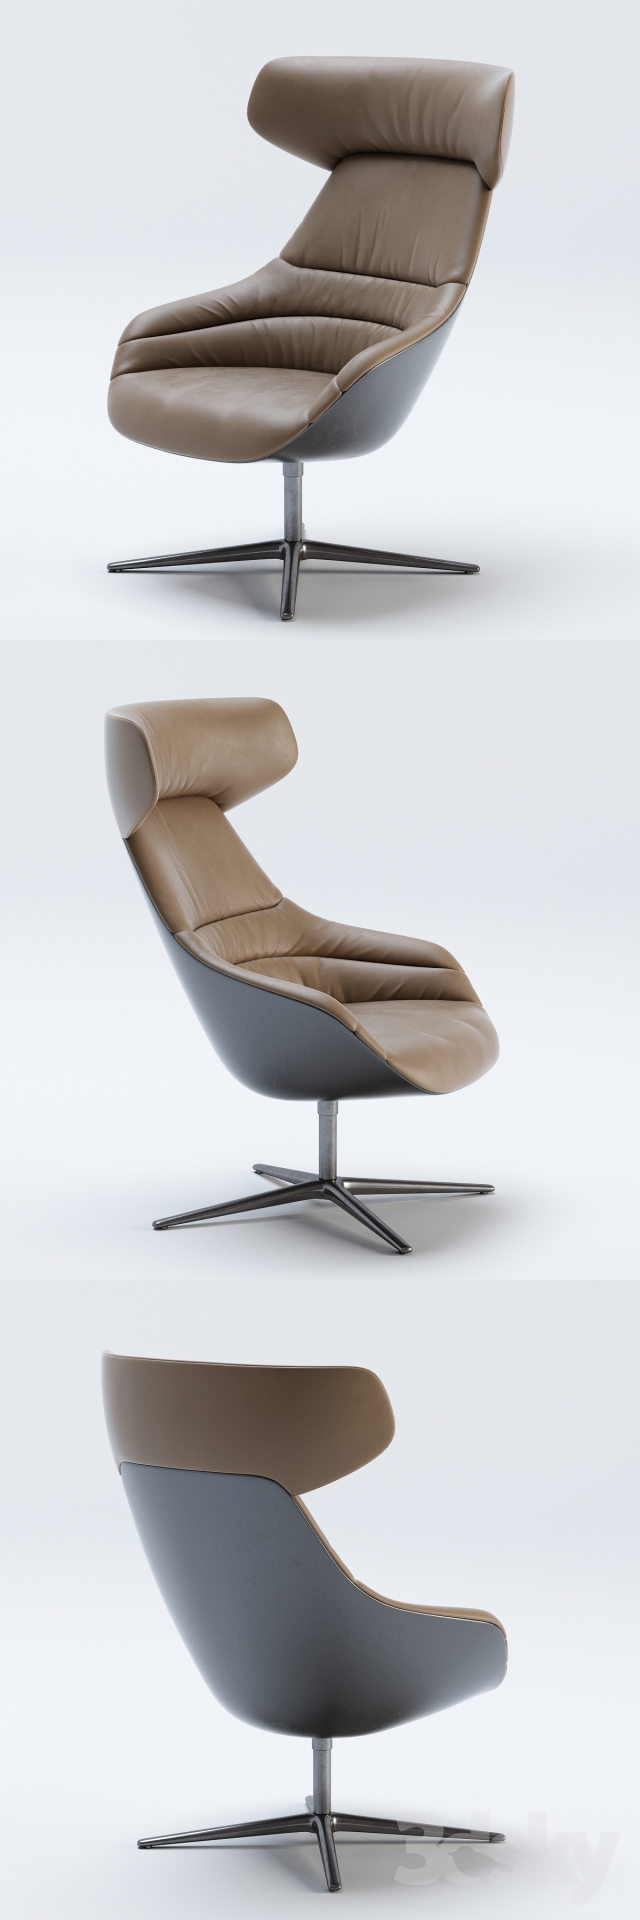 3d Models Arm Chair Walter Knoll Kyo Lounge Chair